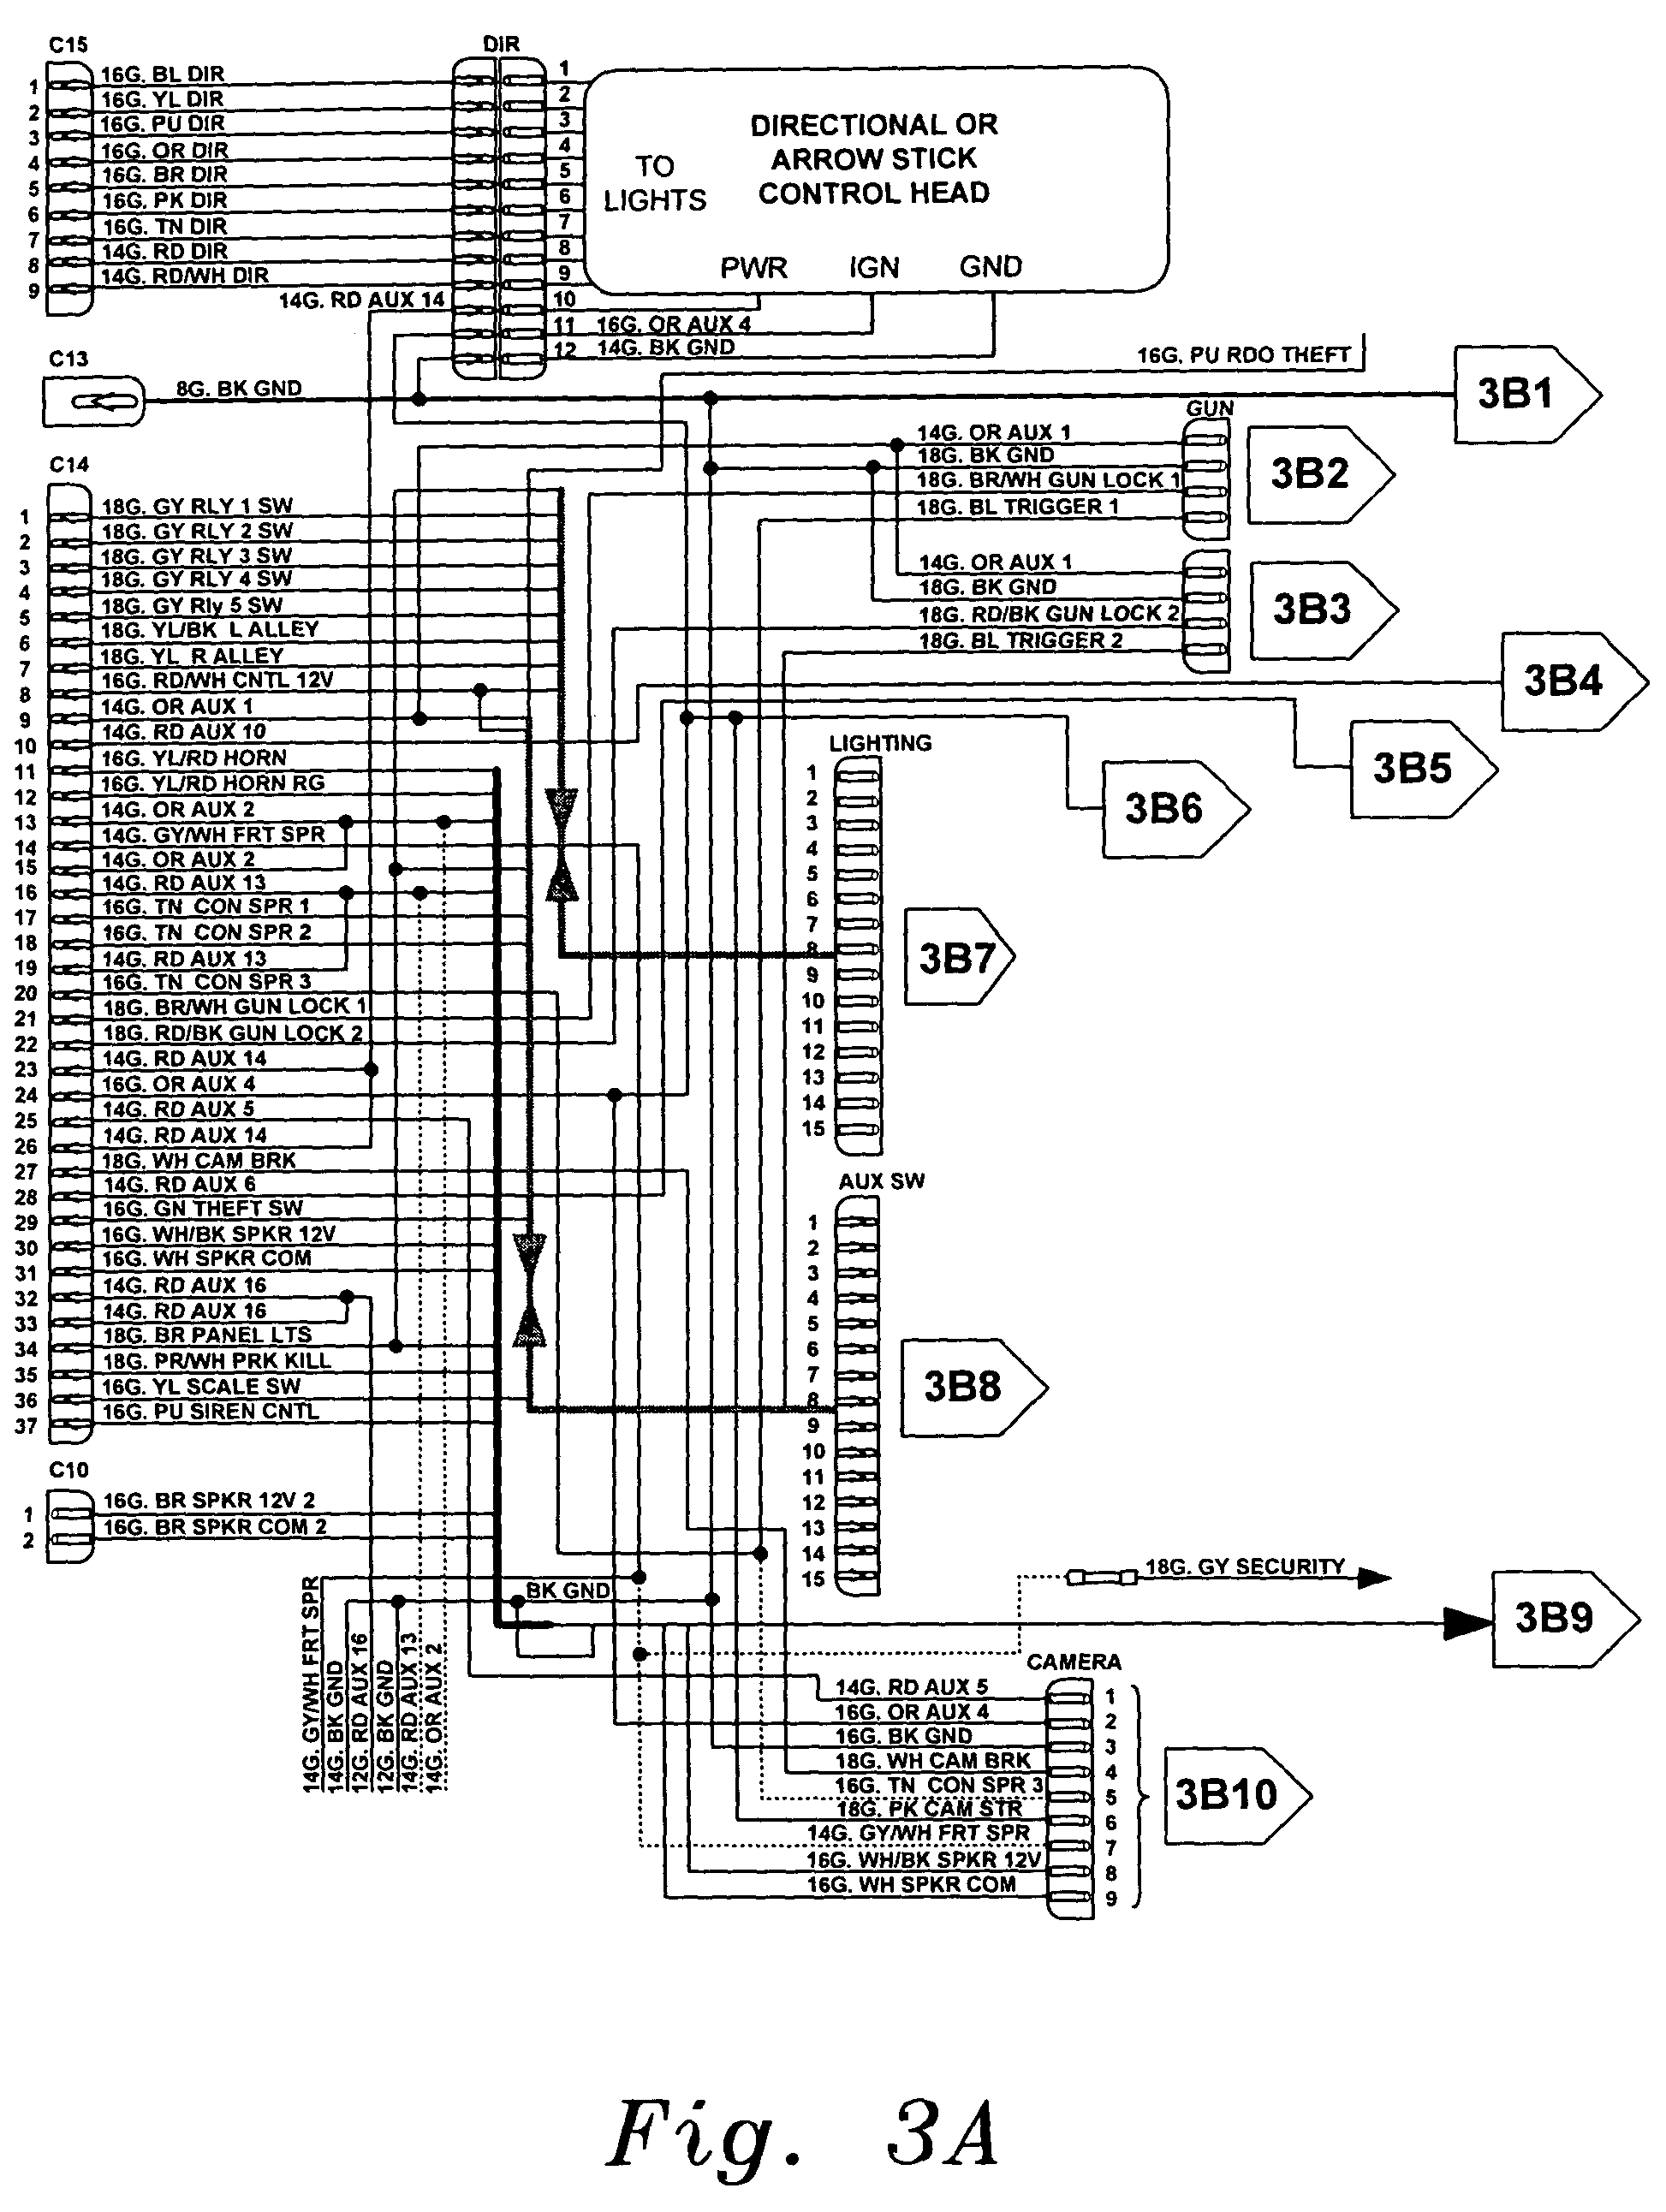 C15 Ecm Wiring Diagram